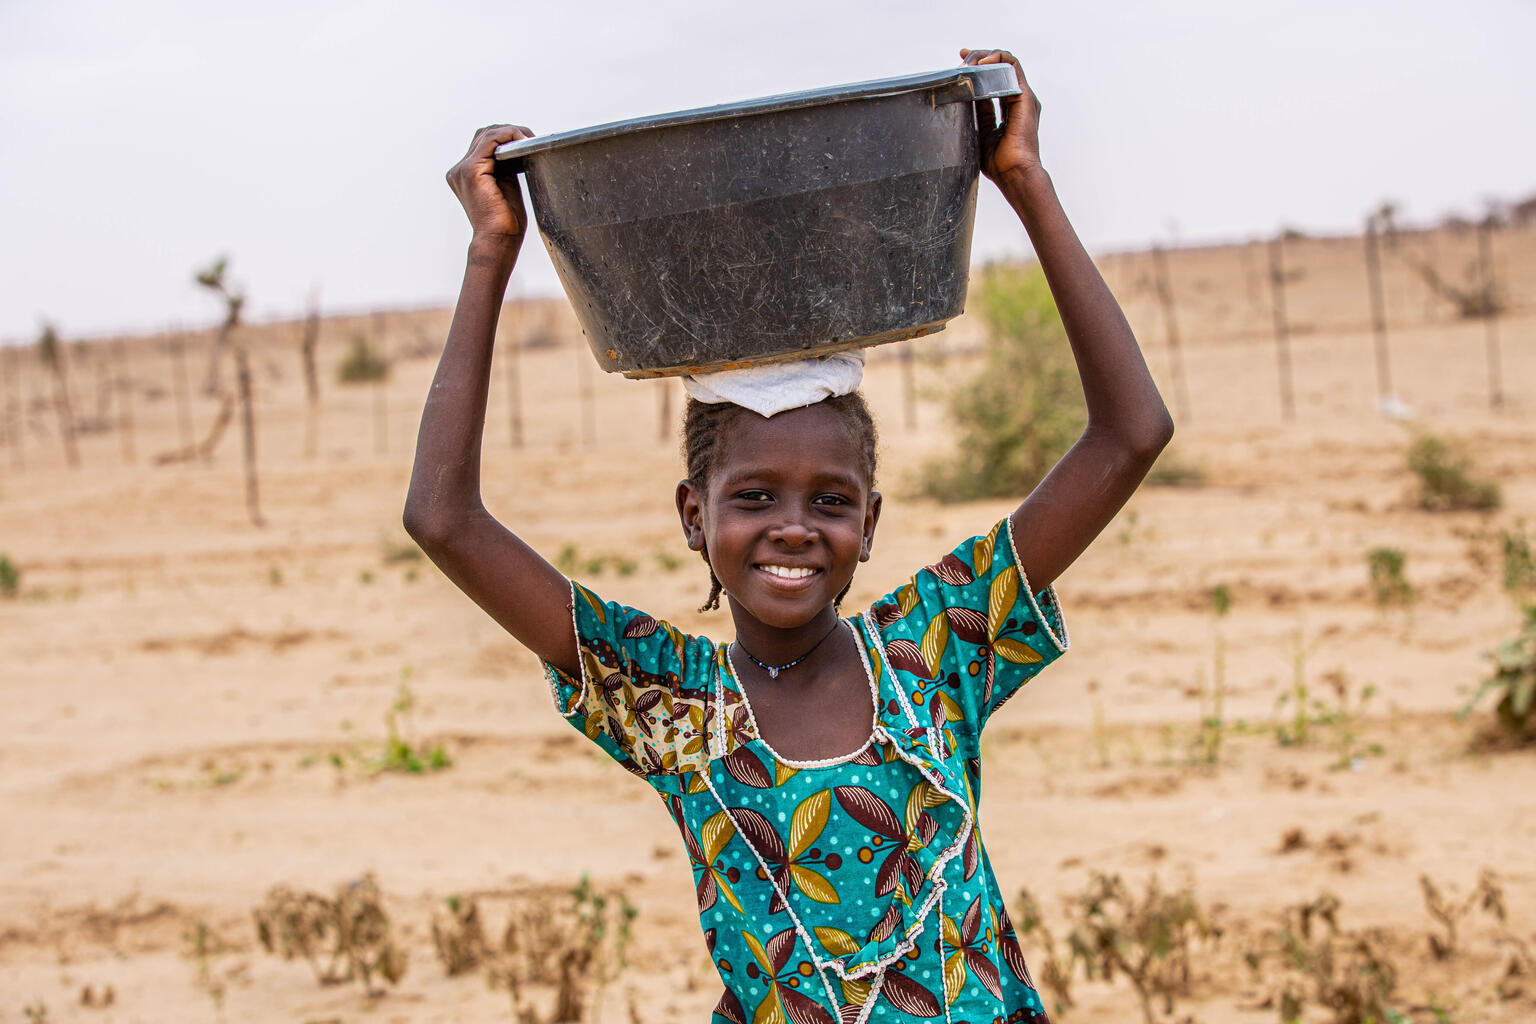 Because of the lack of water in her village, a young girl have to fetch water from huge wells dug in the ground. In the heat of the day, she carries 10 to 30 liter basins on their heads to irrigate the market garden. The operation is repeated up to 10 times a day.